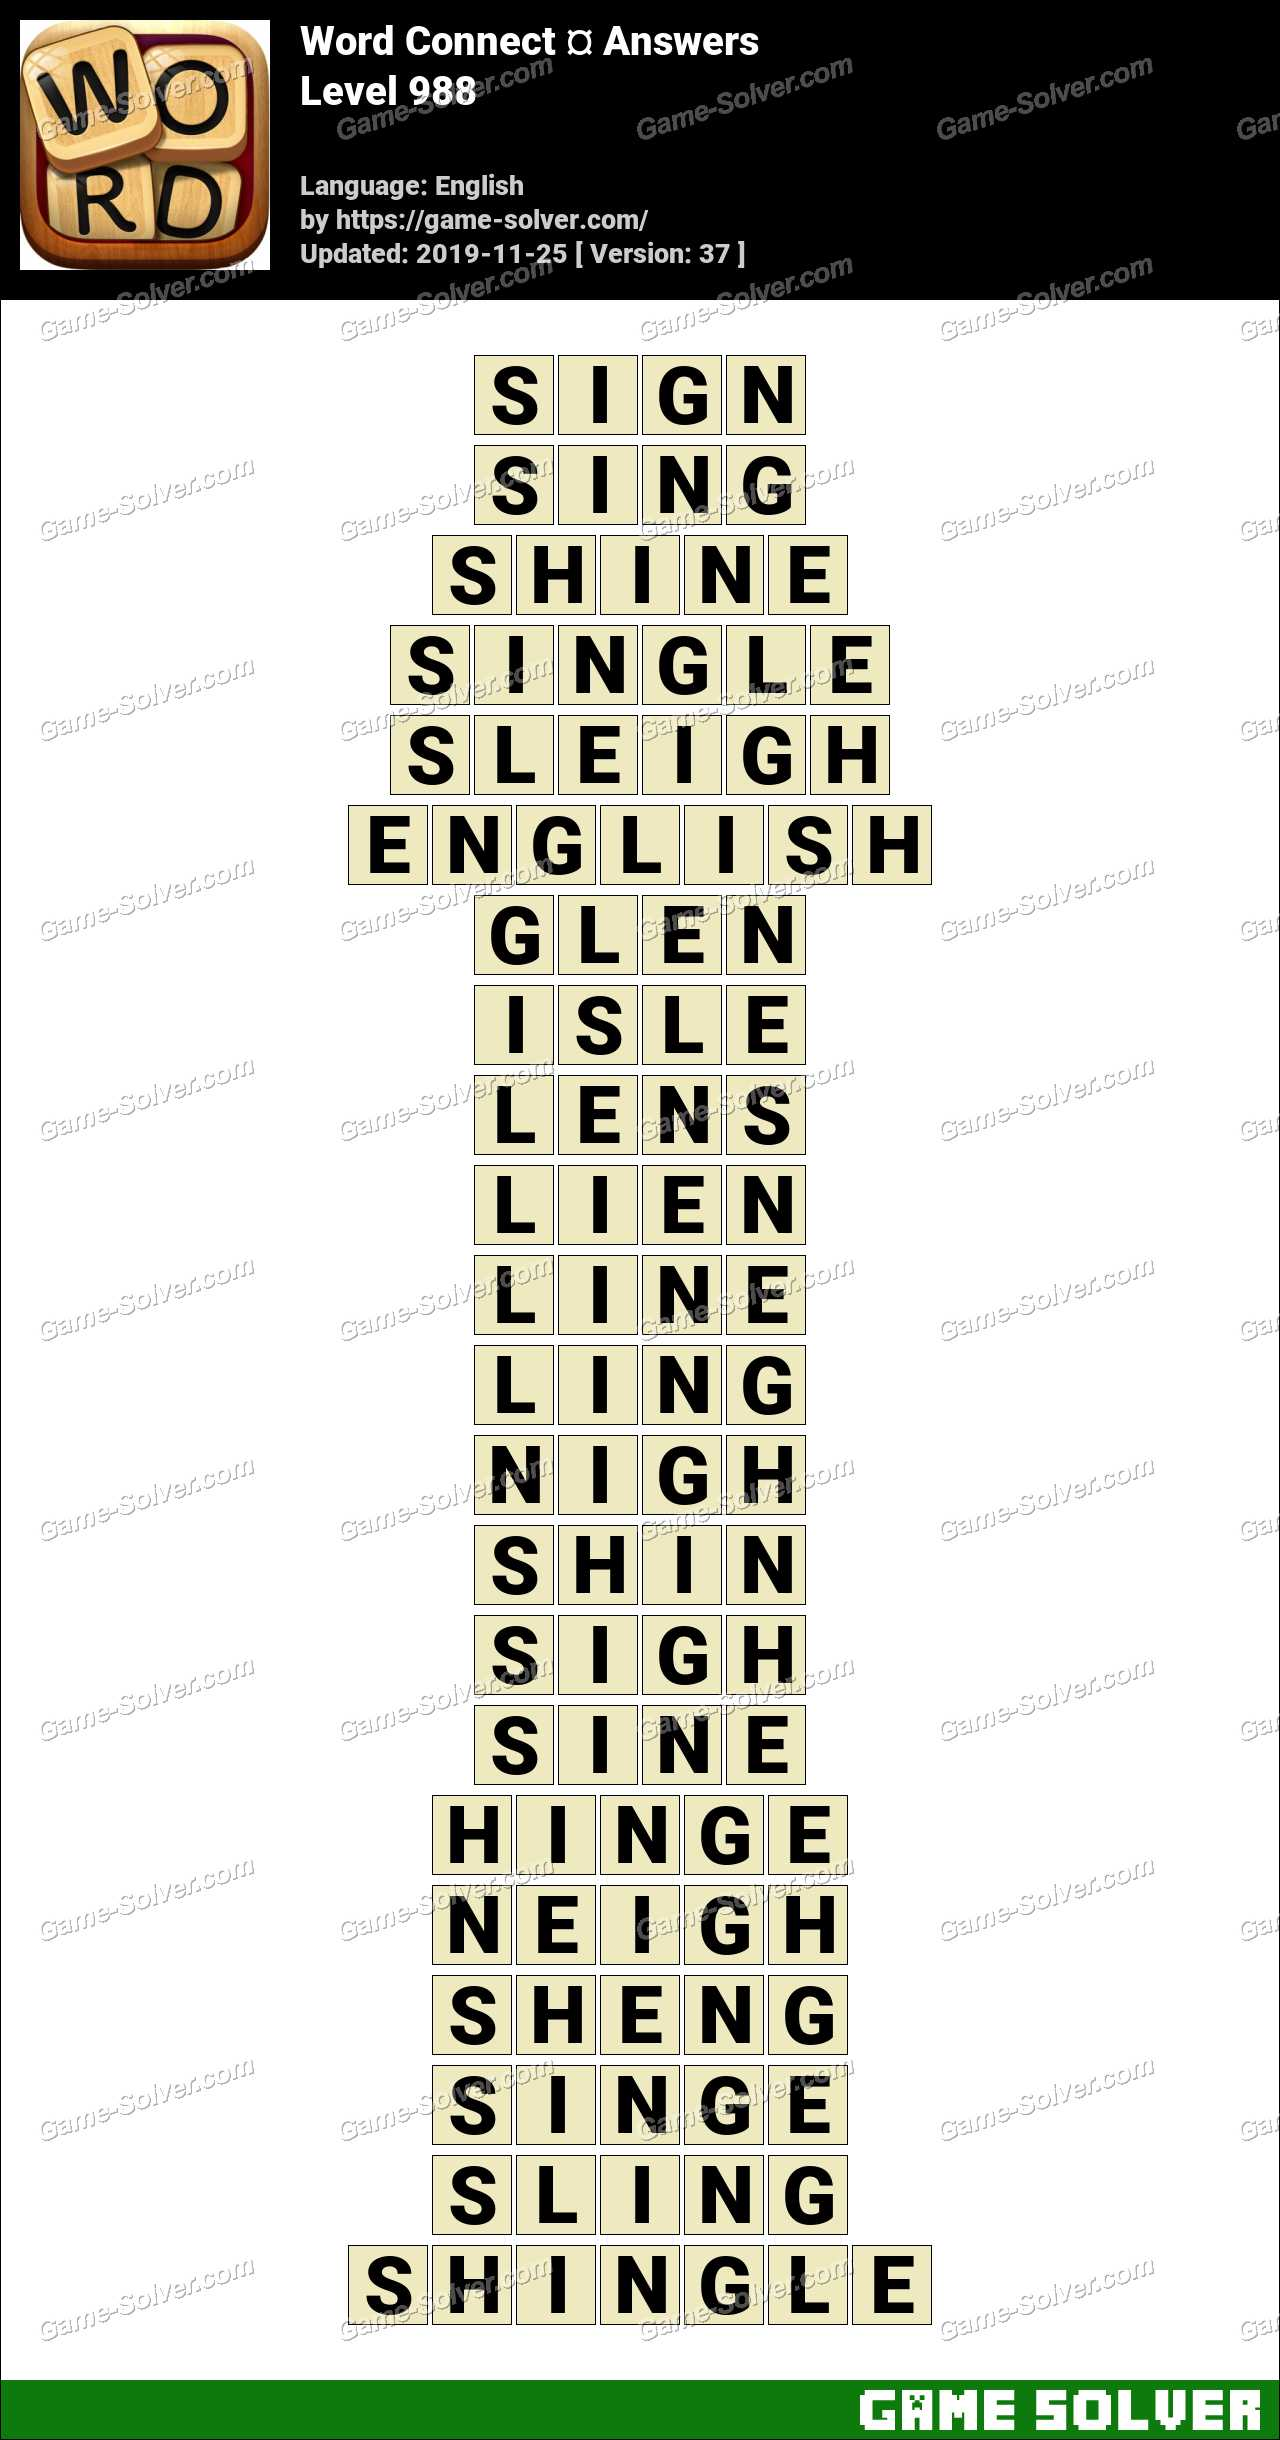 Word Connect Level 988 Answers